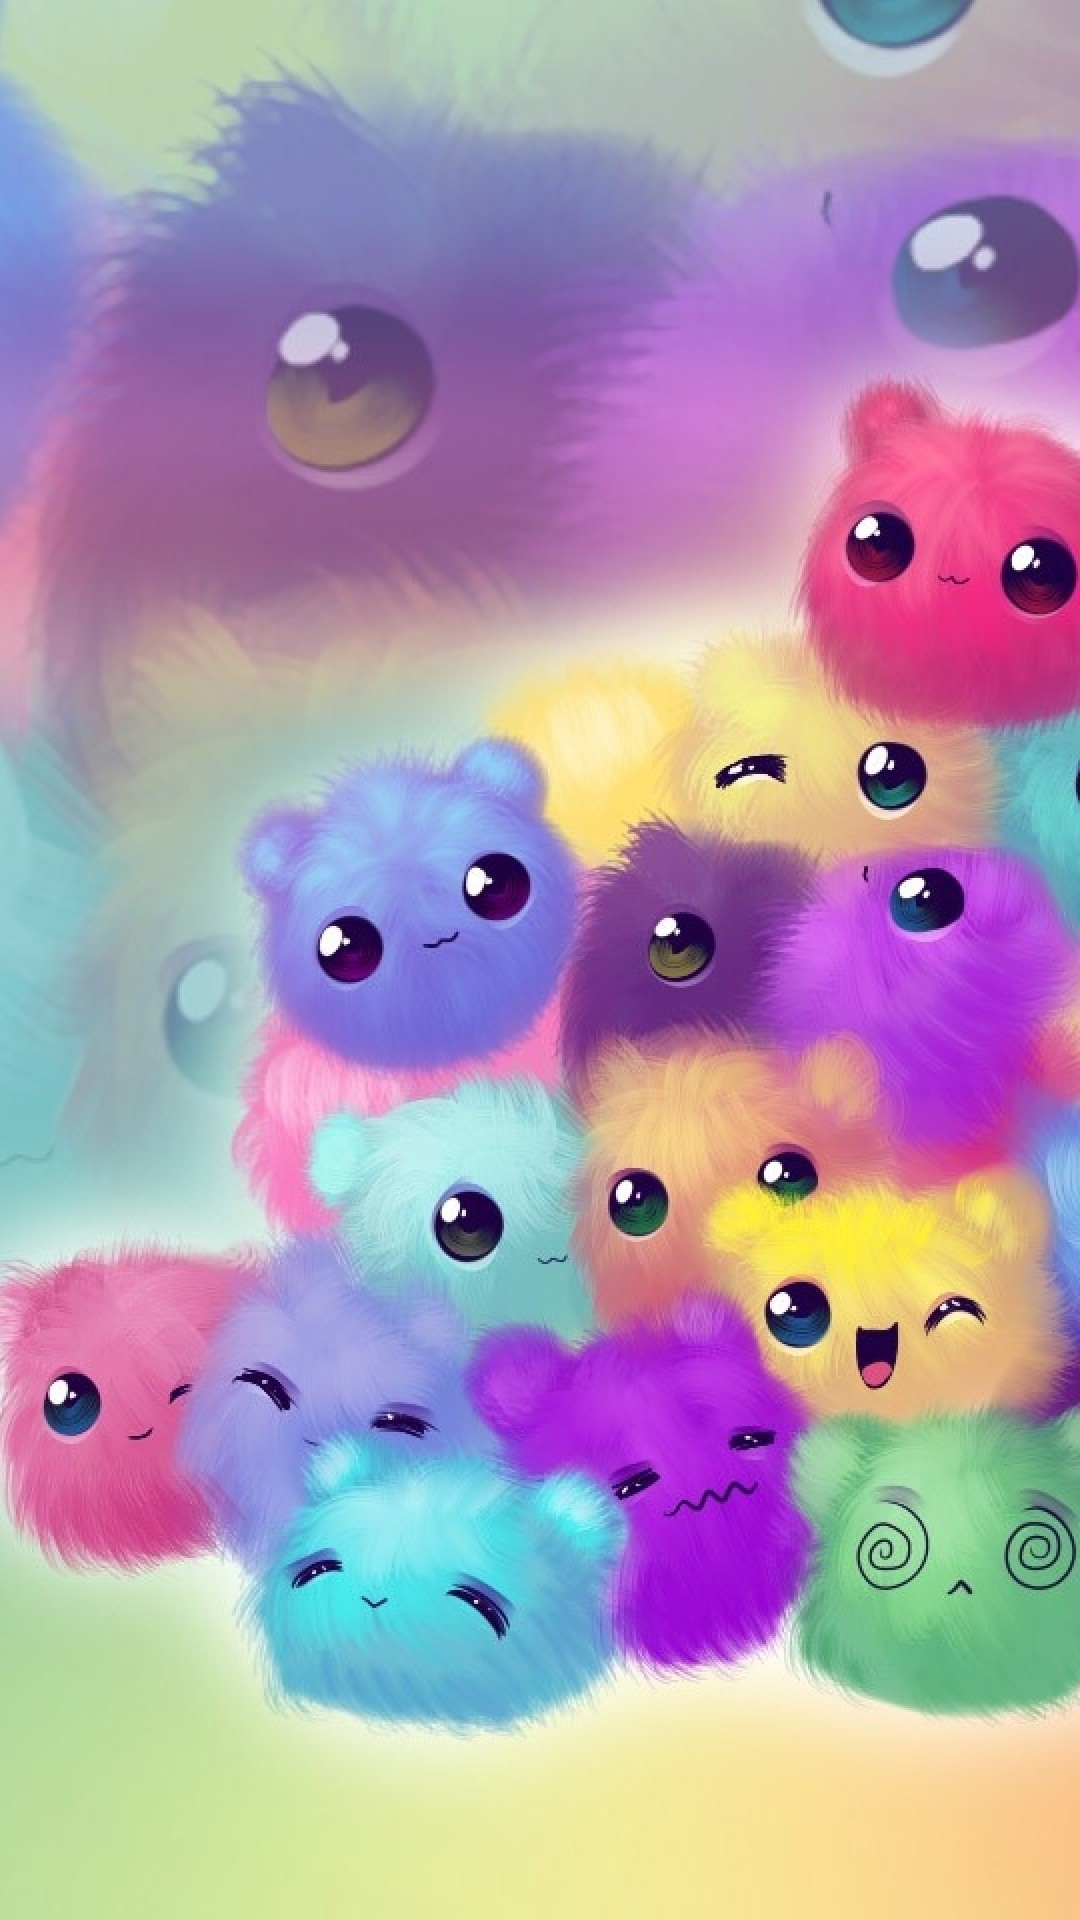 Cute wallpapers for phones 69 images - Cute wallpapers for a laptop ...